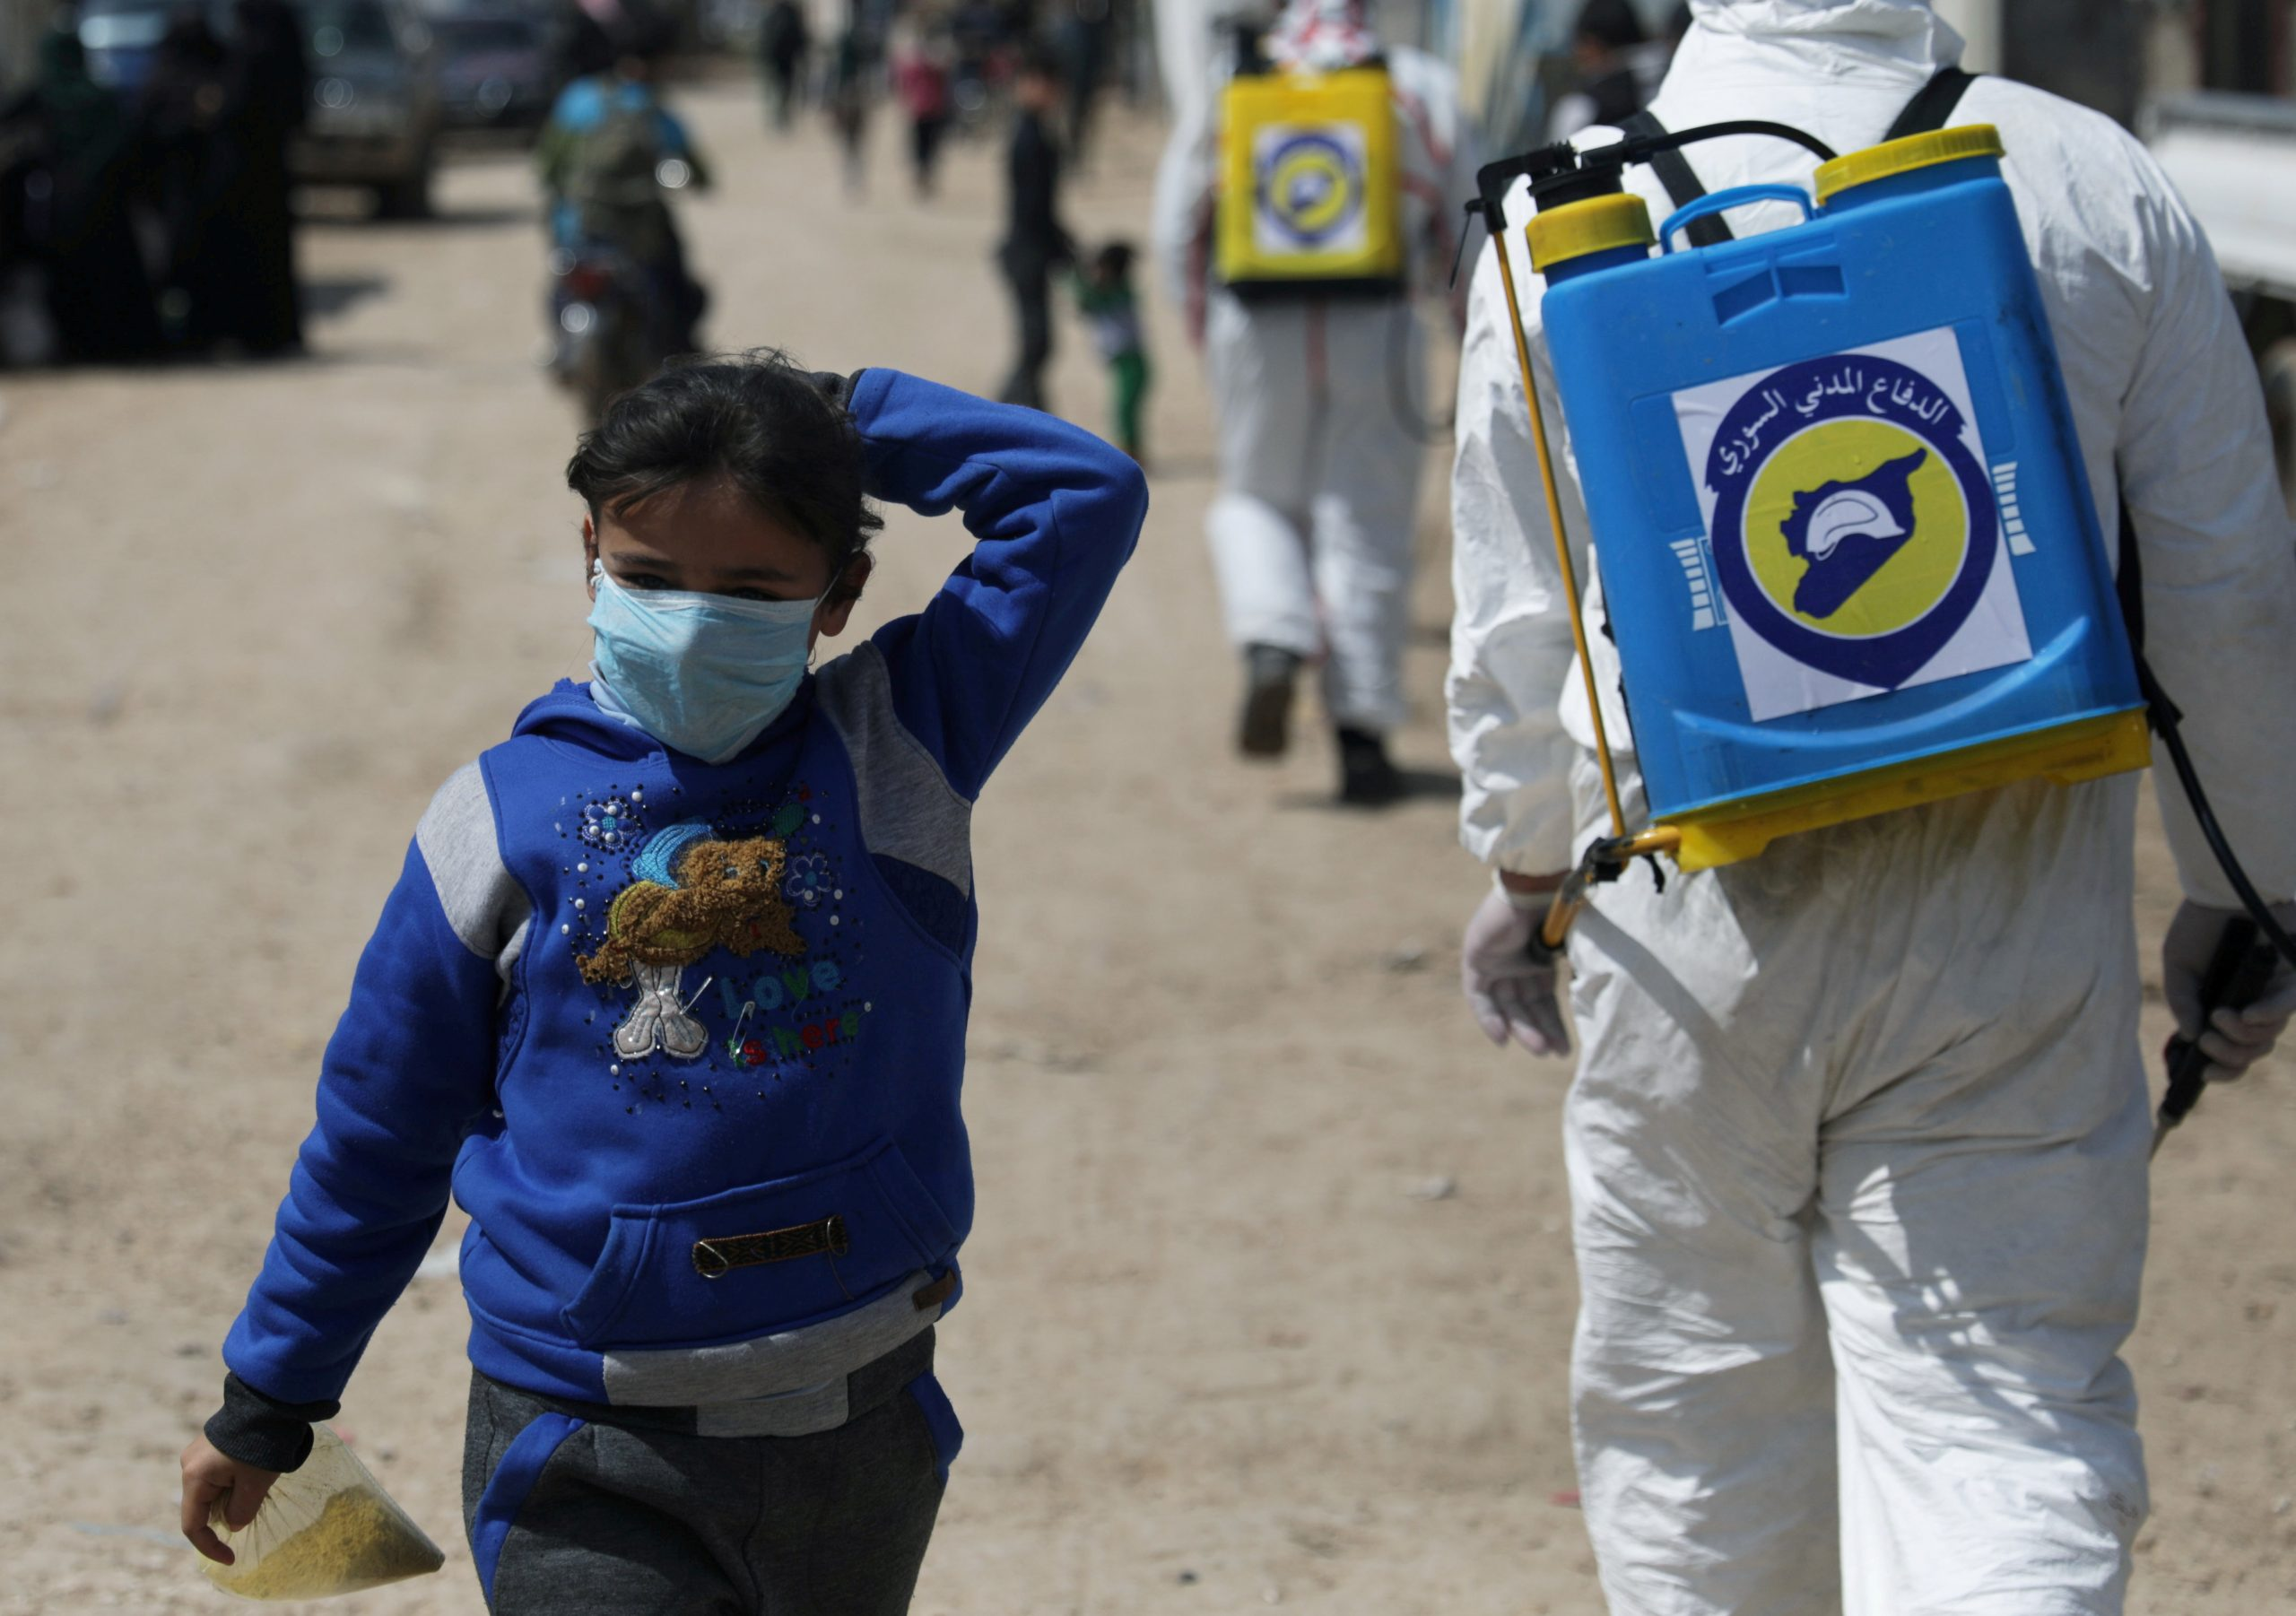 An internally displaced Syrian girl wears a face mask as members of the Syrian Civil defence sanitize the Bab Al-Nour internally displaced persons camp, to prevent the spread of coronavirus disease (COVID-19) in Azaz, Syria. (Khalil Ashawi, March 26th, 2020) Reuters.